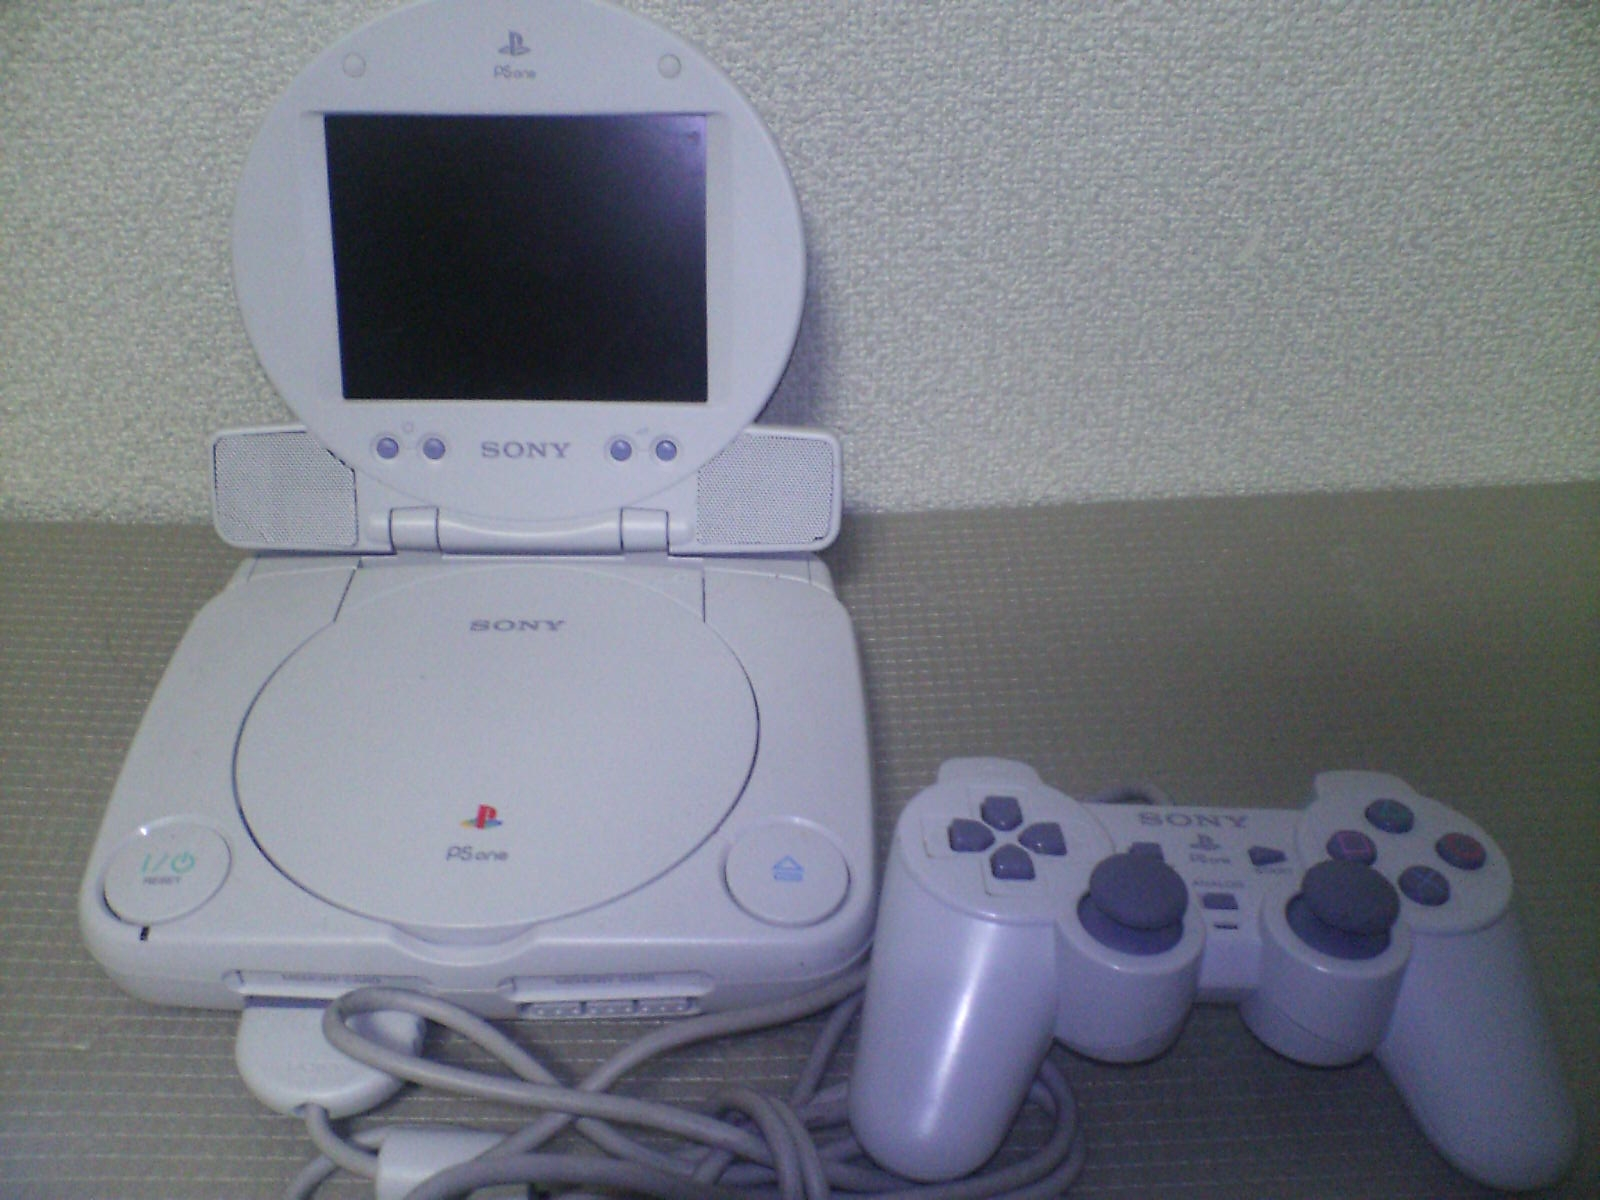 File:PSone jpg - Wikimedia Commons